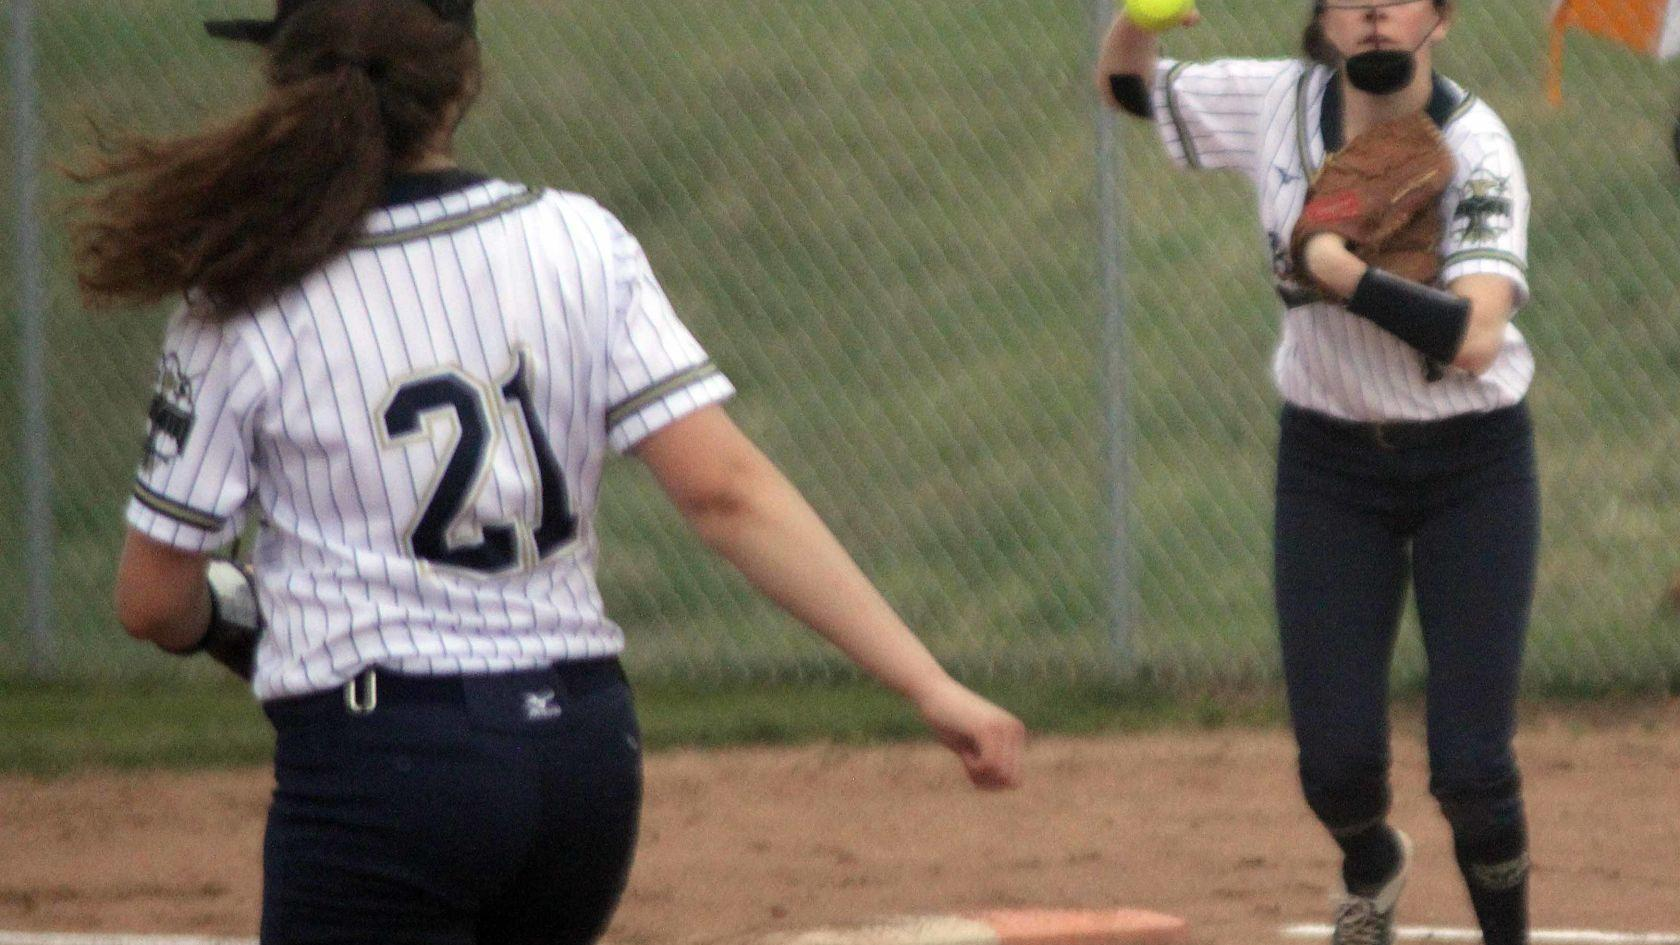 PREP SOFTBALL: Baraboo falls to Wisconsin Dells in rain-shortened game